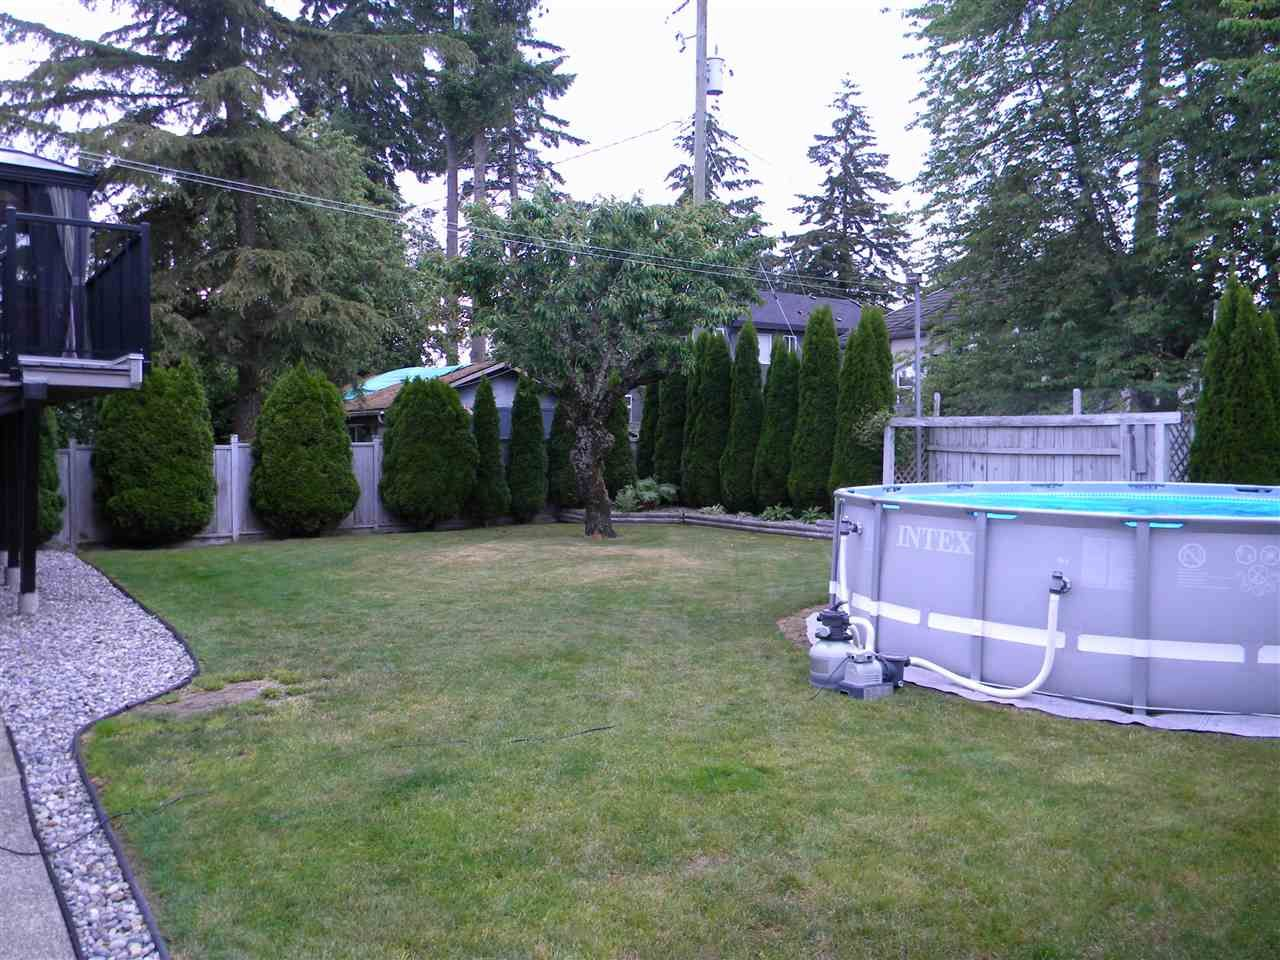 Photo 19: Photos: 14251 71 Avenue in Surrey: East Newton House for sale : MLS®# R2075211